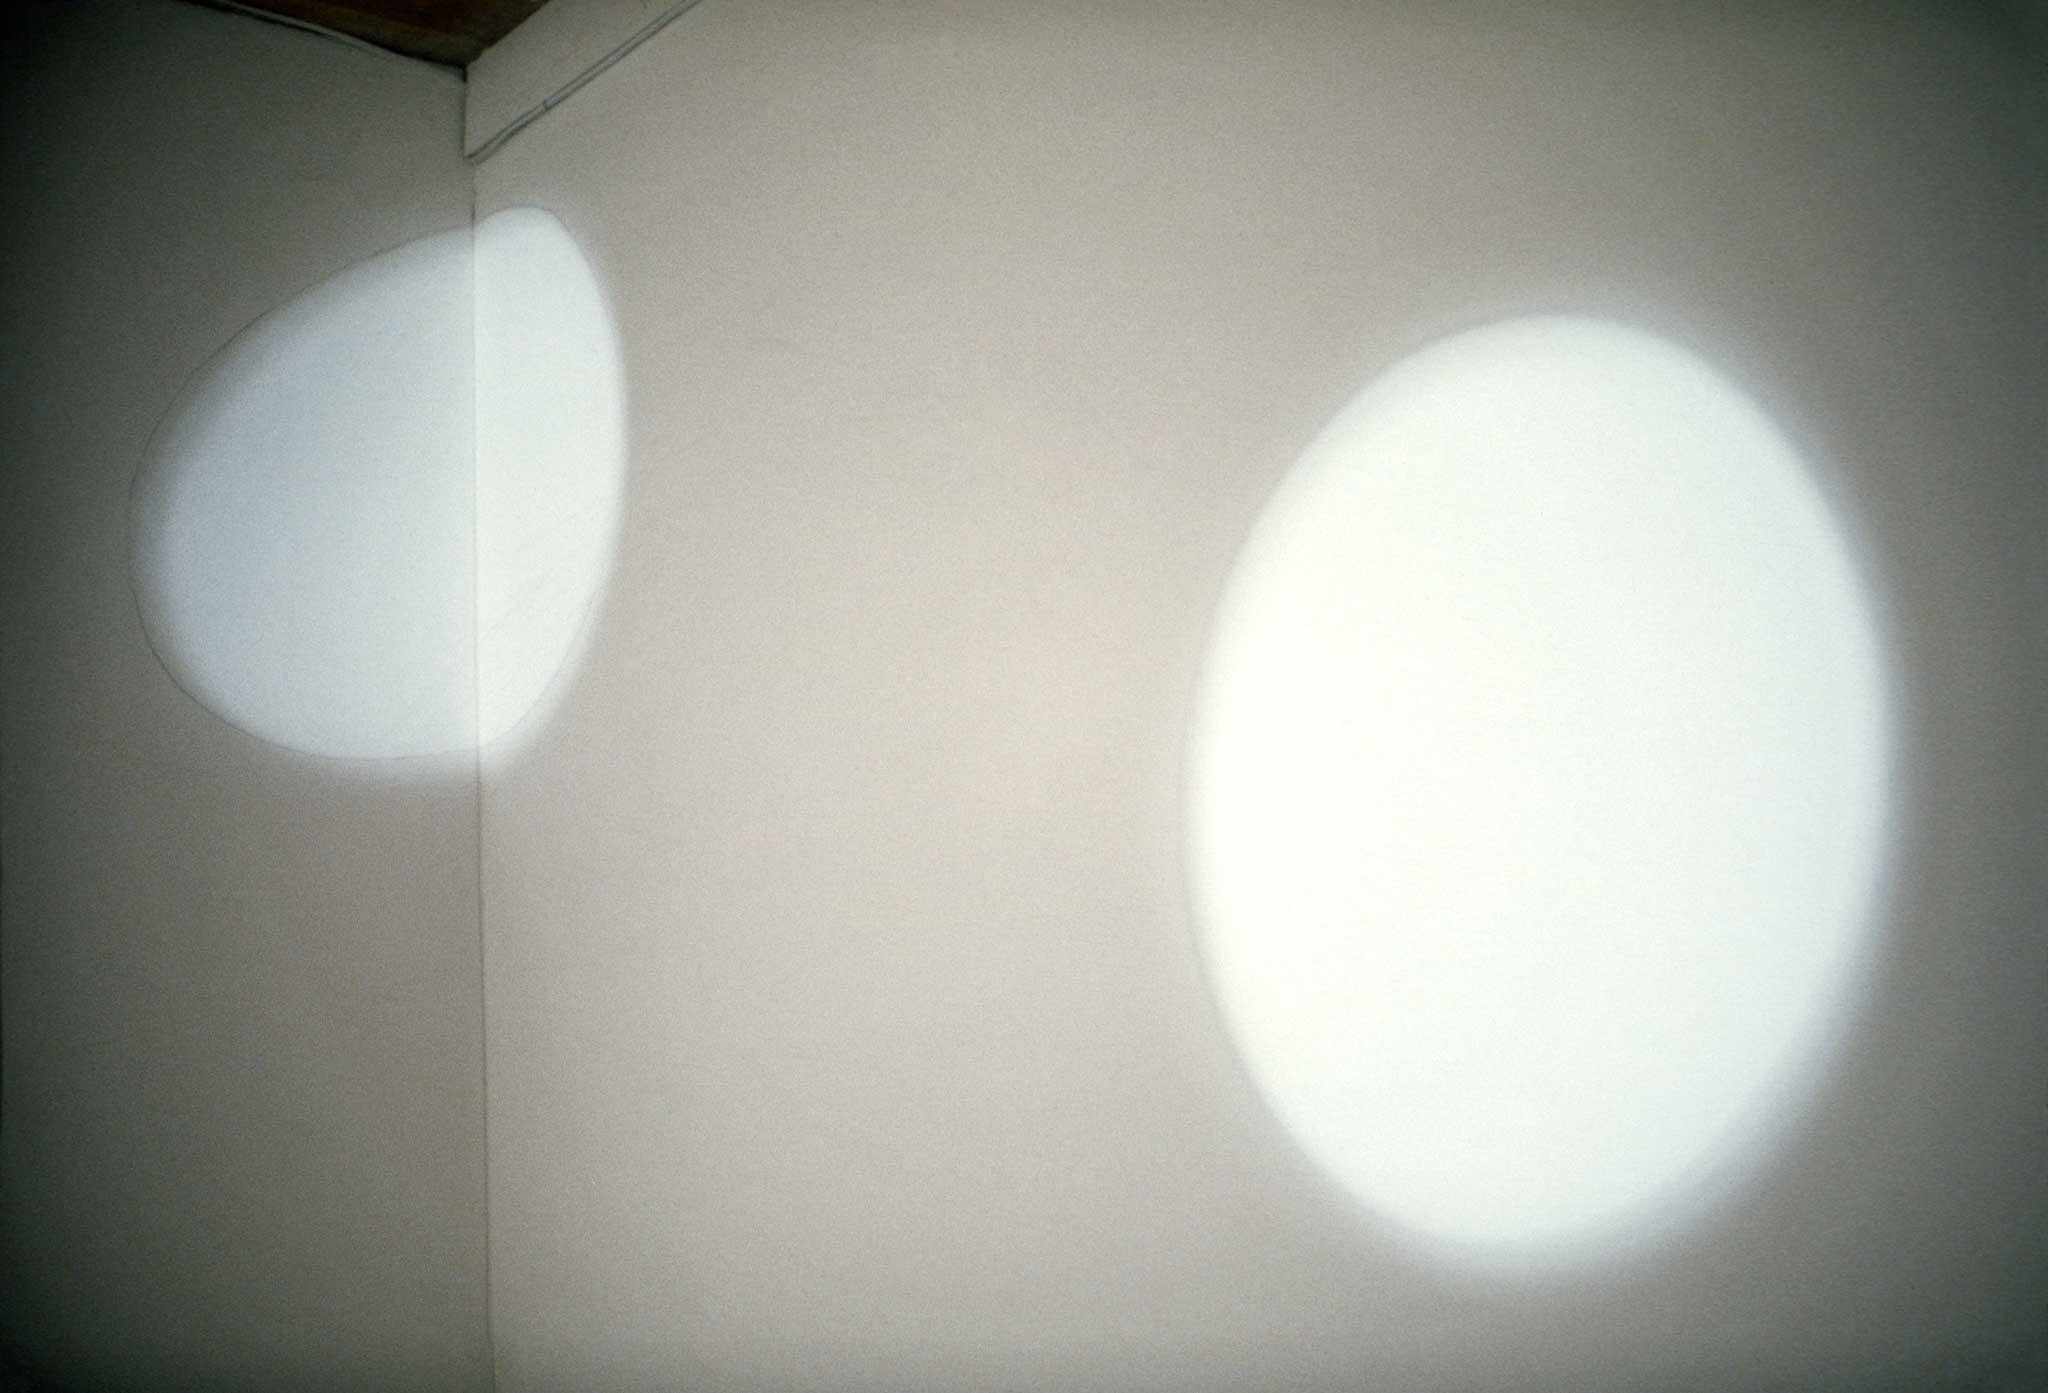 Light cast on a wall in the shape of a circle